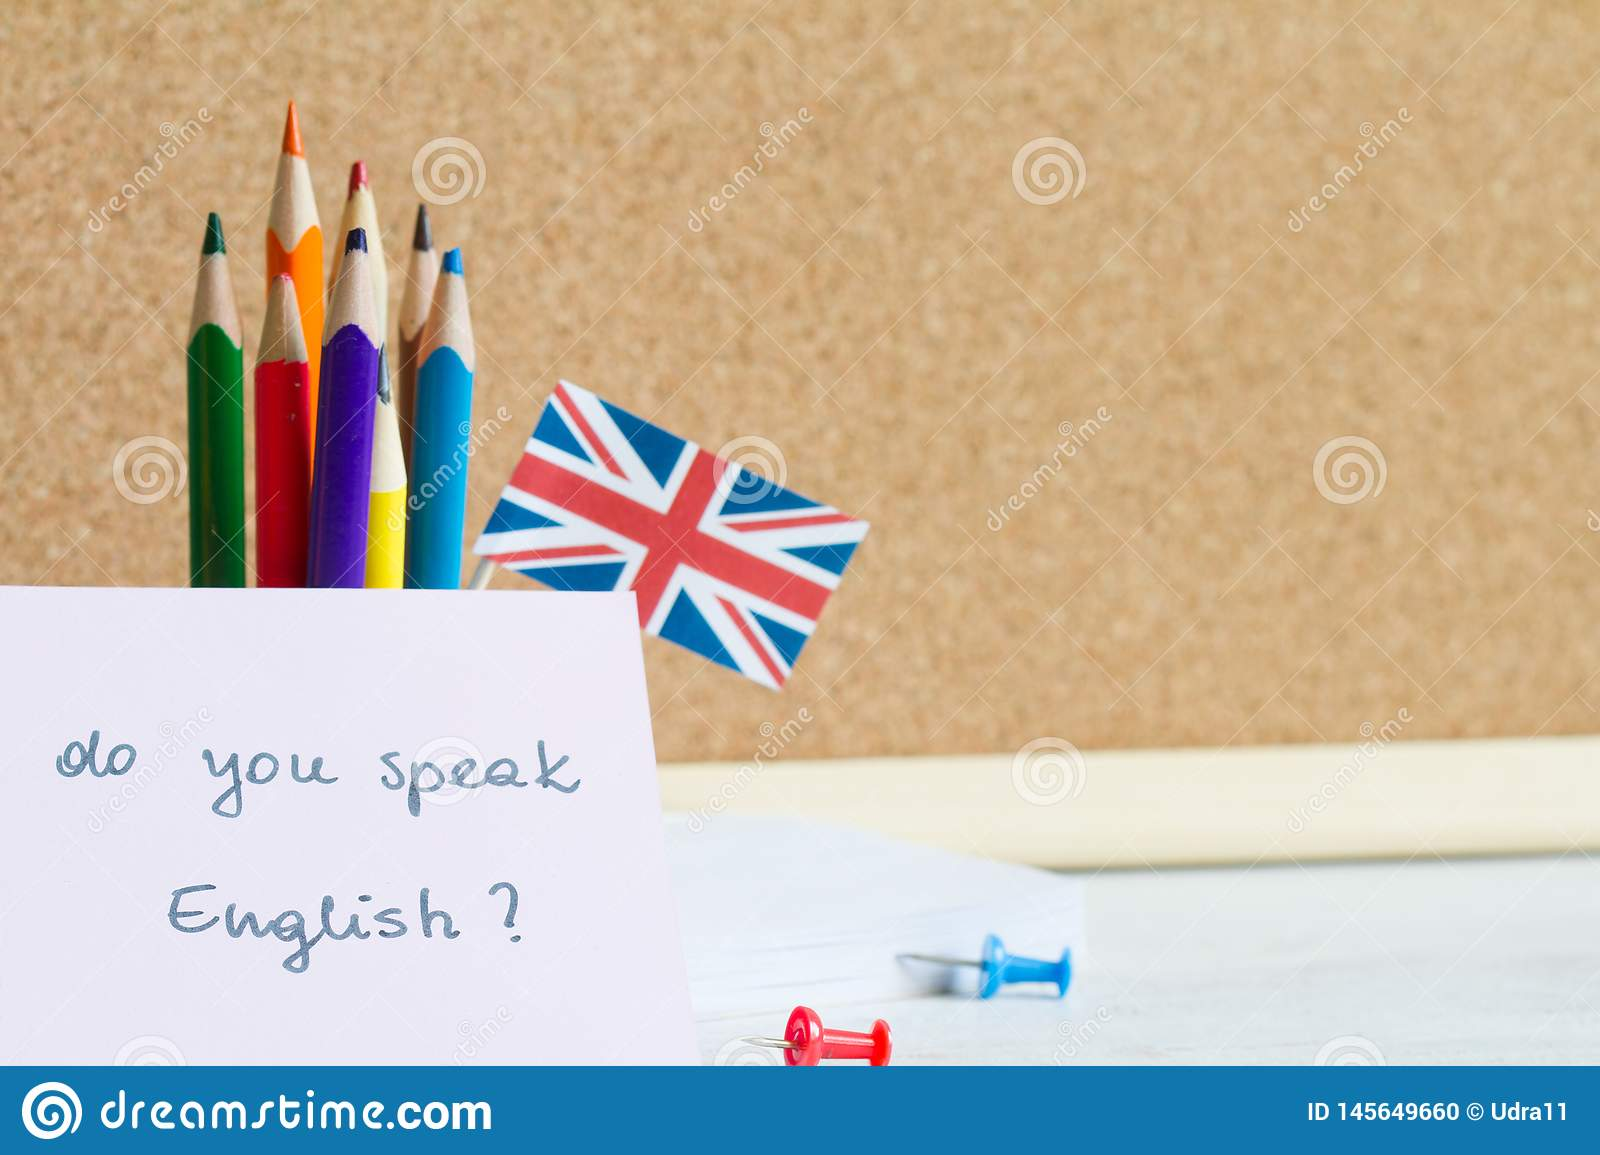 Learning speaking and teaching english with british flag abstract background concept